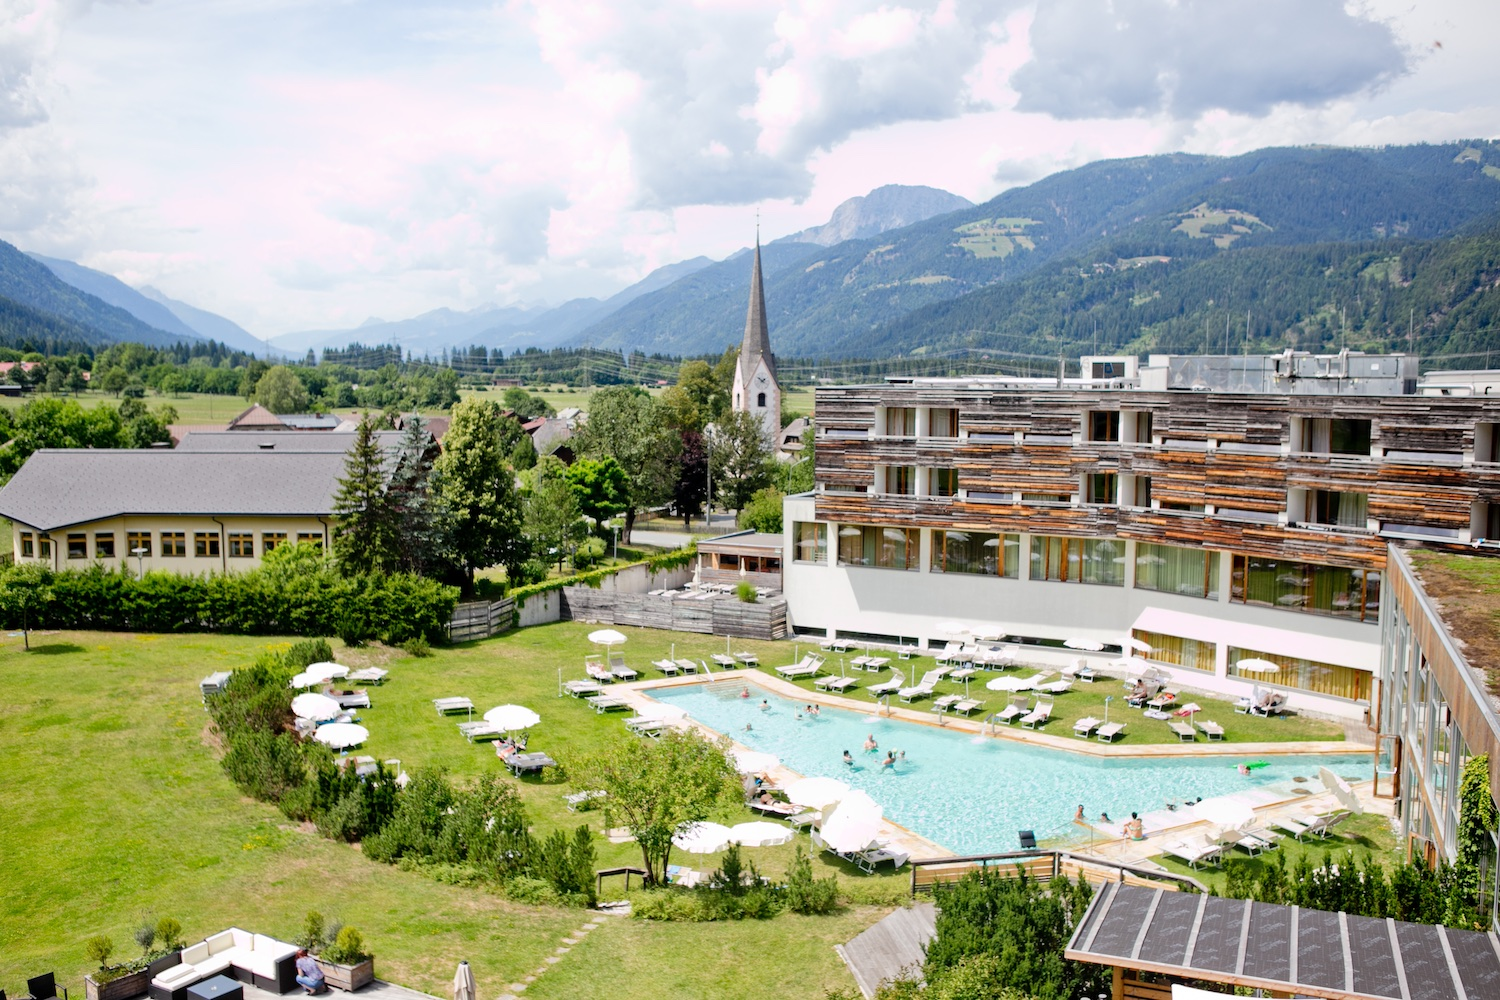 Active-holidays in CARINTHIA with Sportfabrik at FALKENSTEINER HOTEL & SPA CARINZIA, Austiria